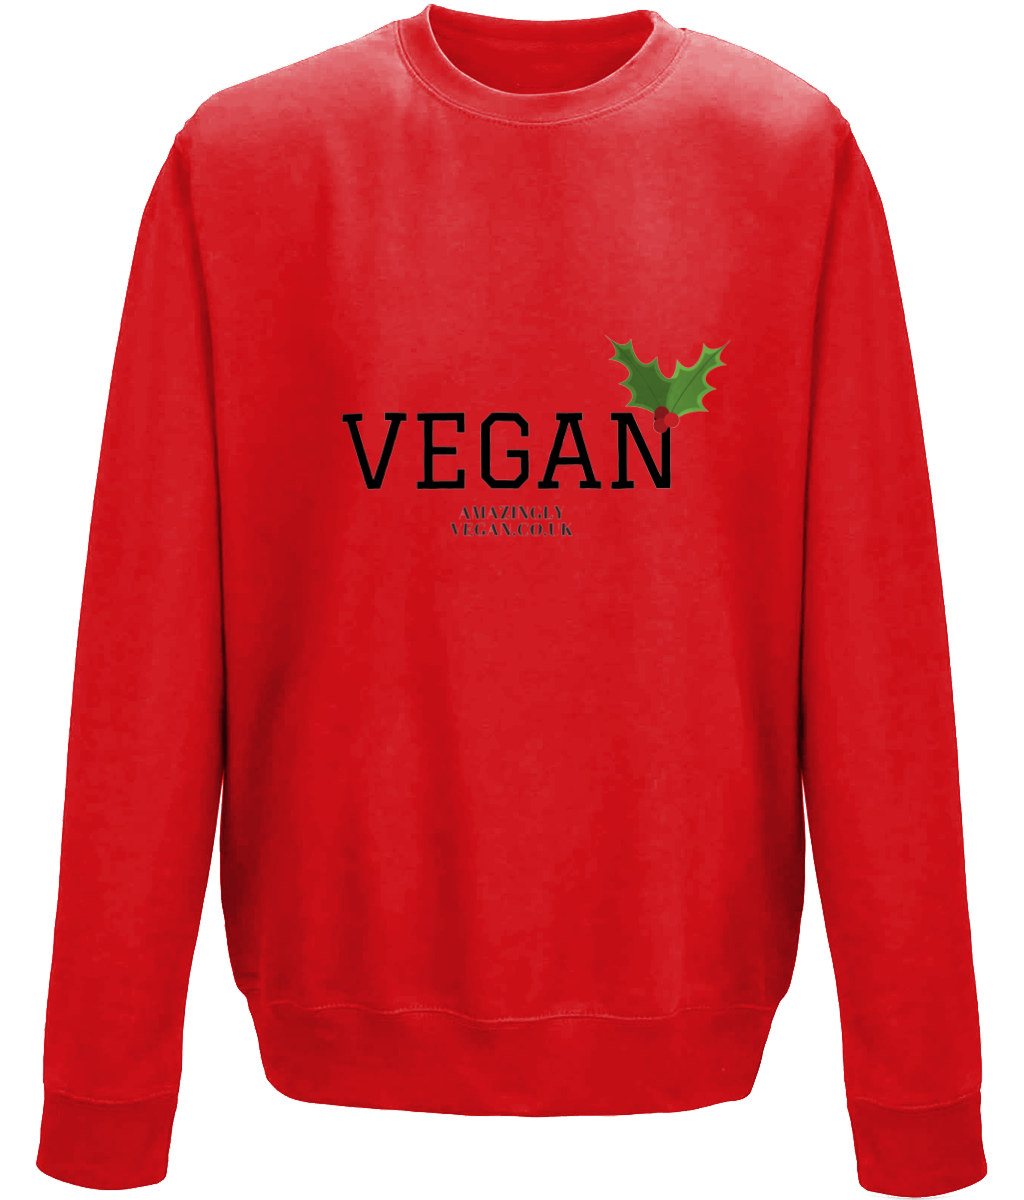 VEGAN - Sweatshirt